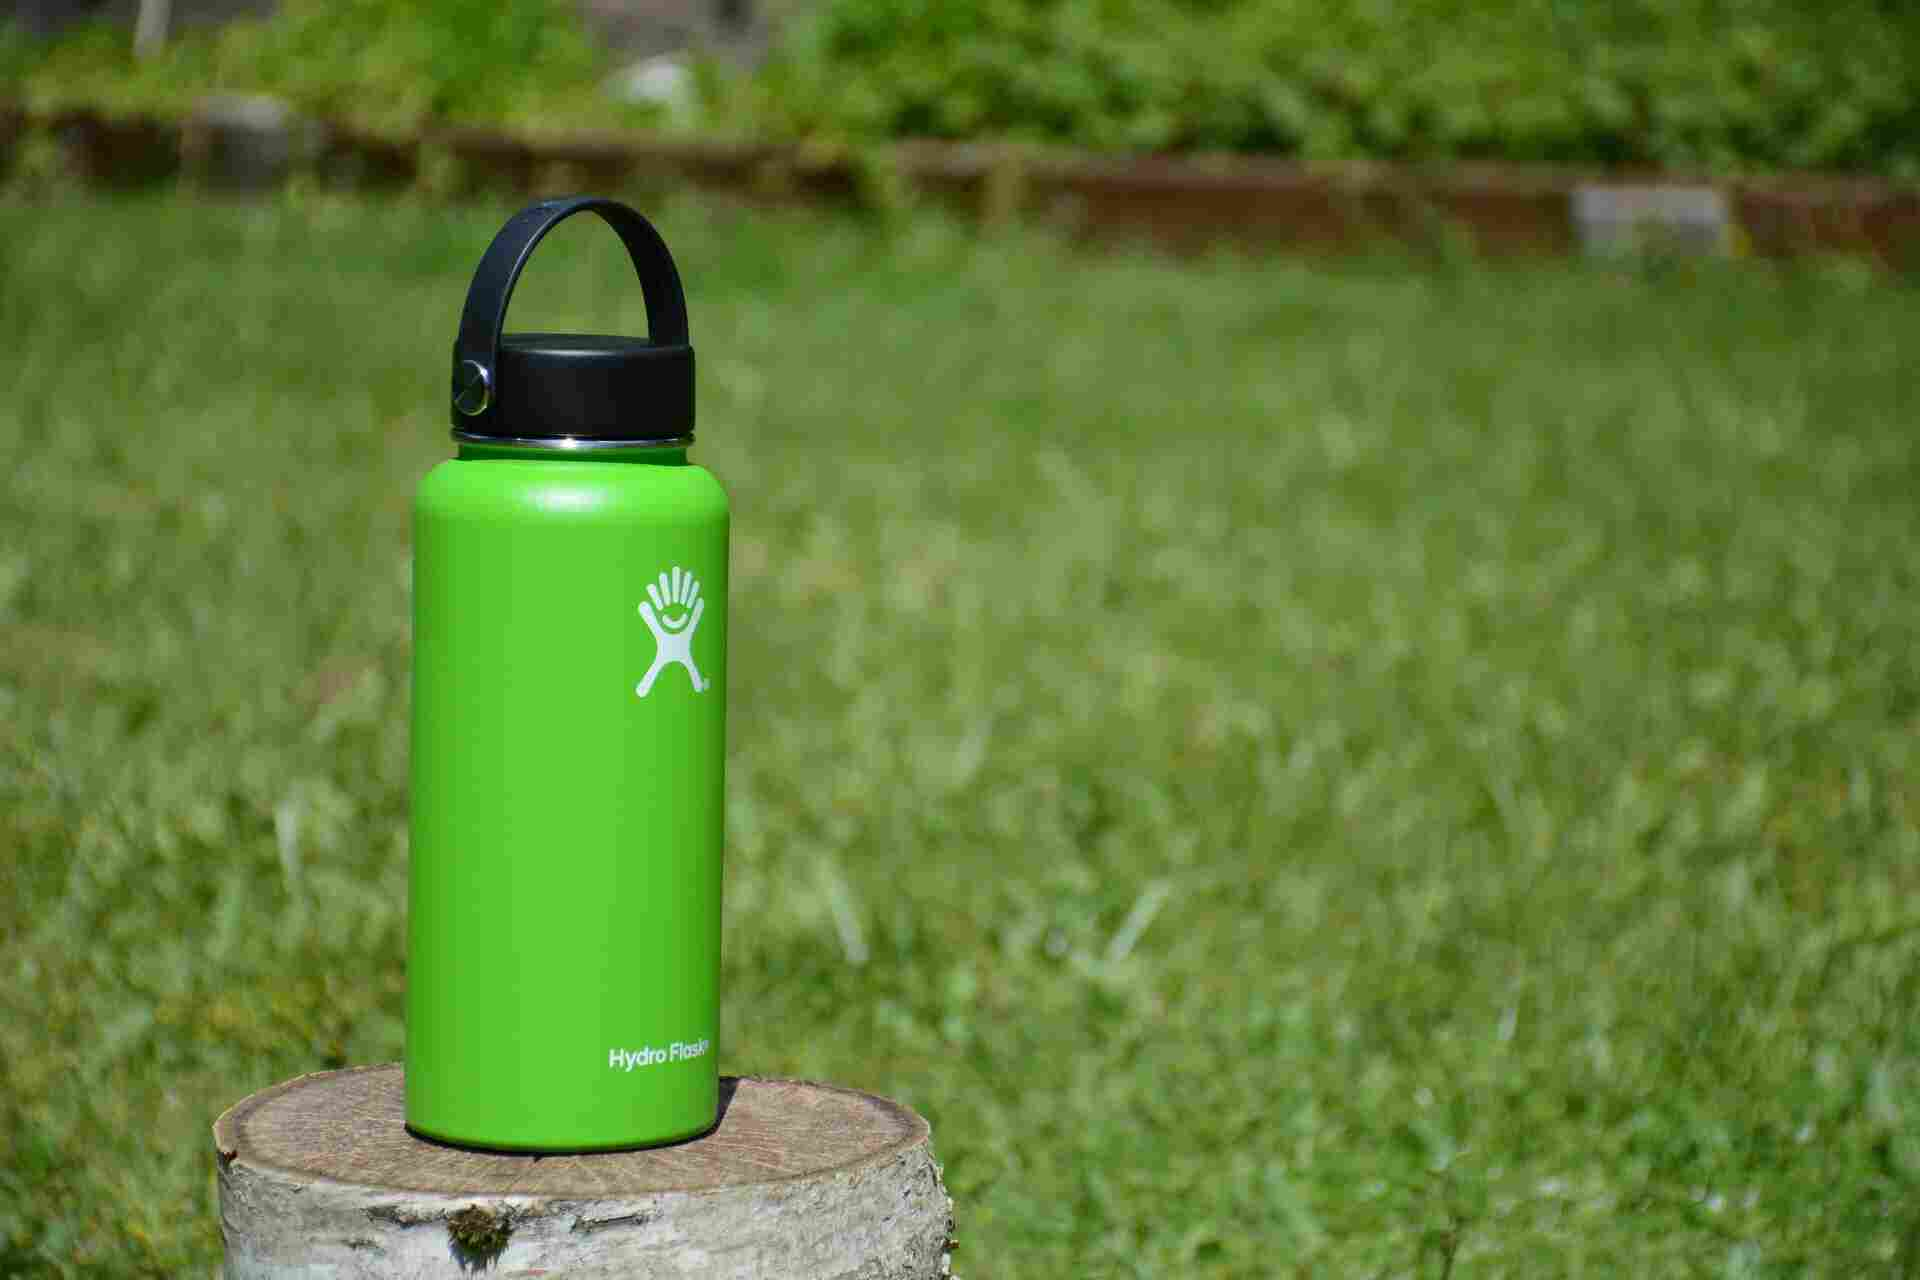 can-you-put-a-hydro-flask-in-a-dishwasher